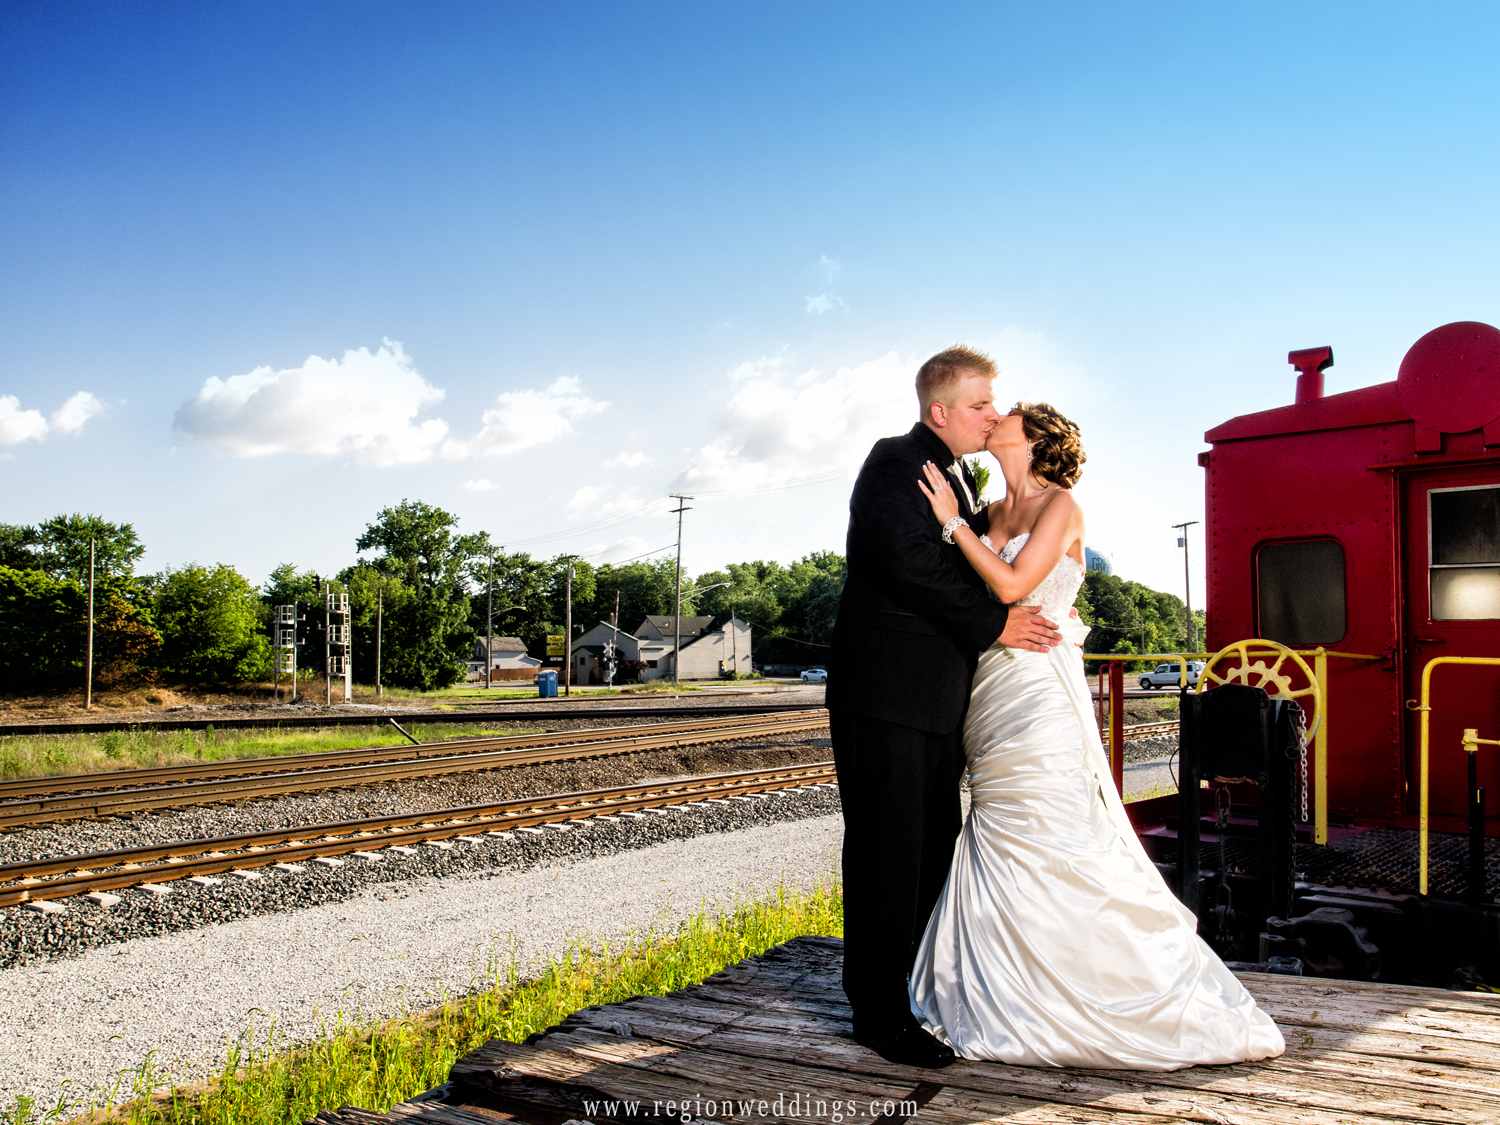 The bride and groom kiss on top of a railroad car in downtown Griffith, Indiana.